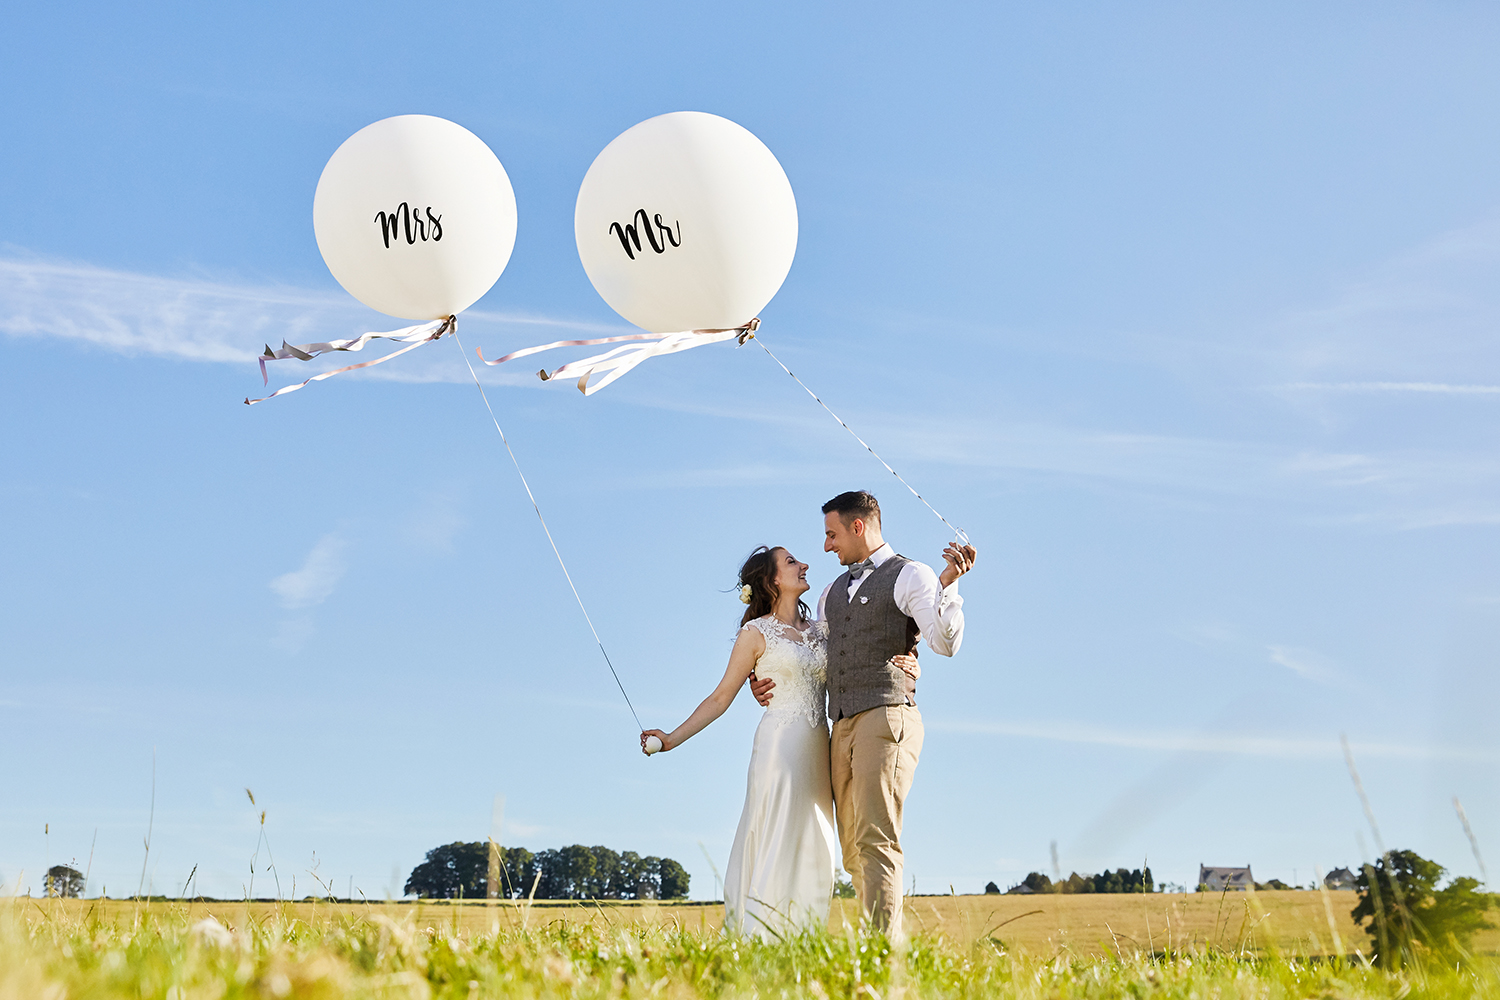 Mr & Mrs Giant Balloons